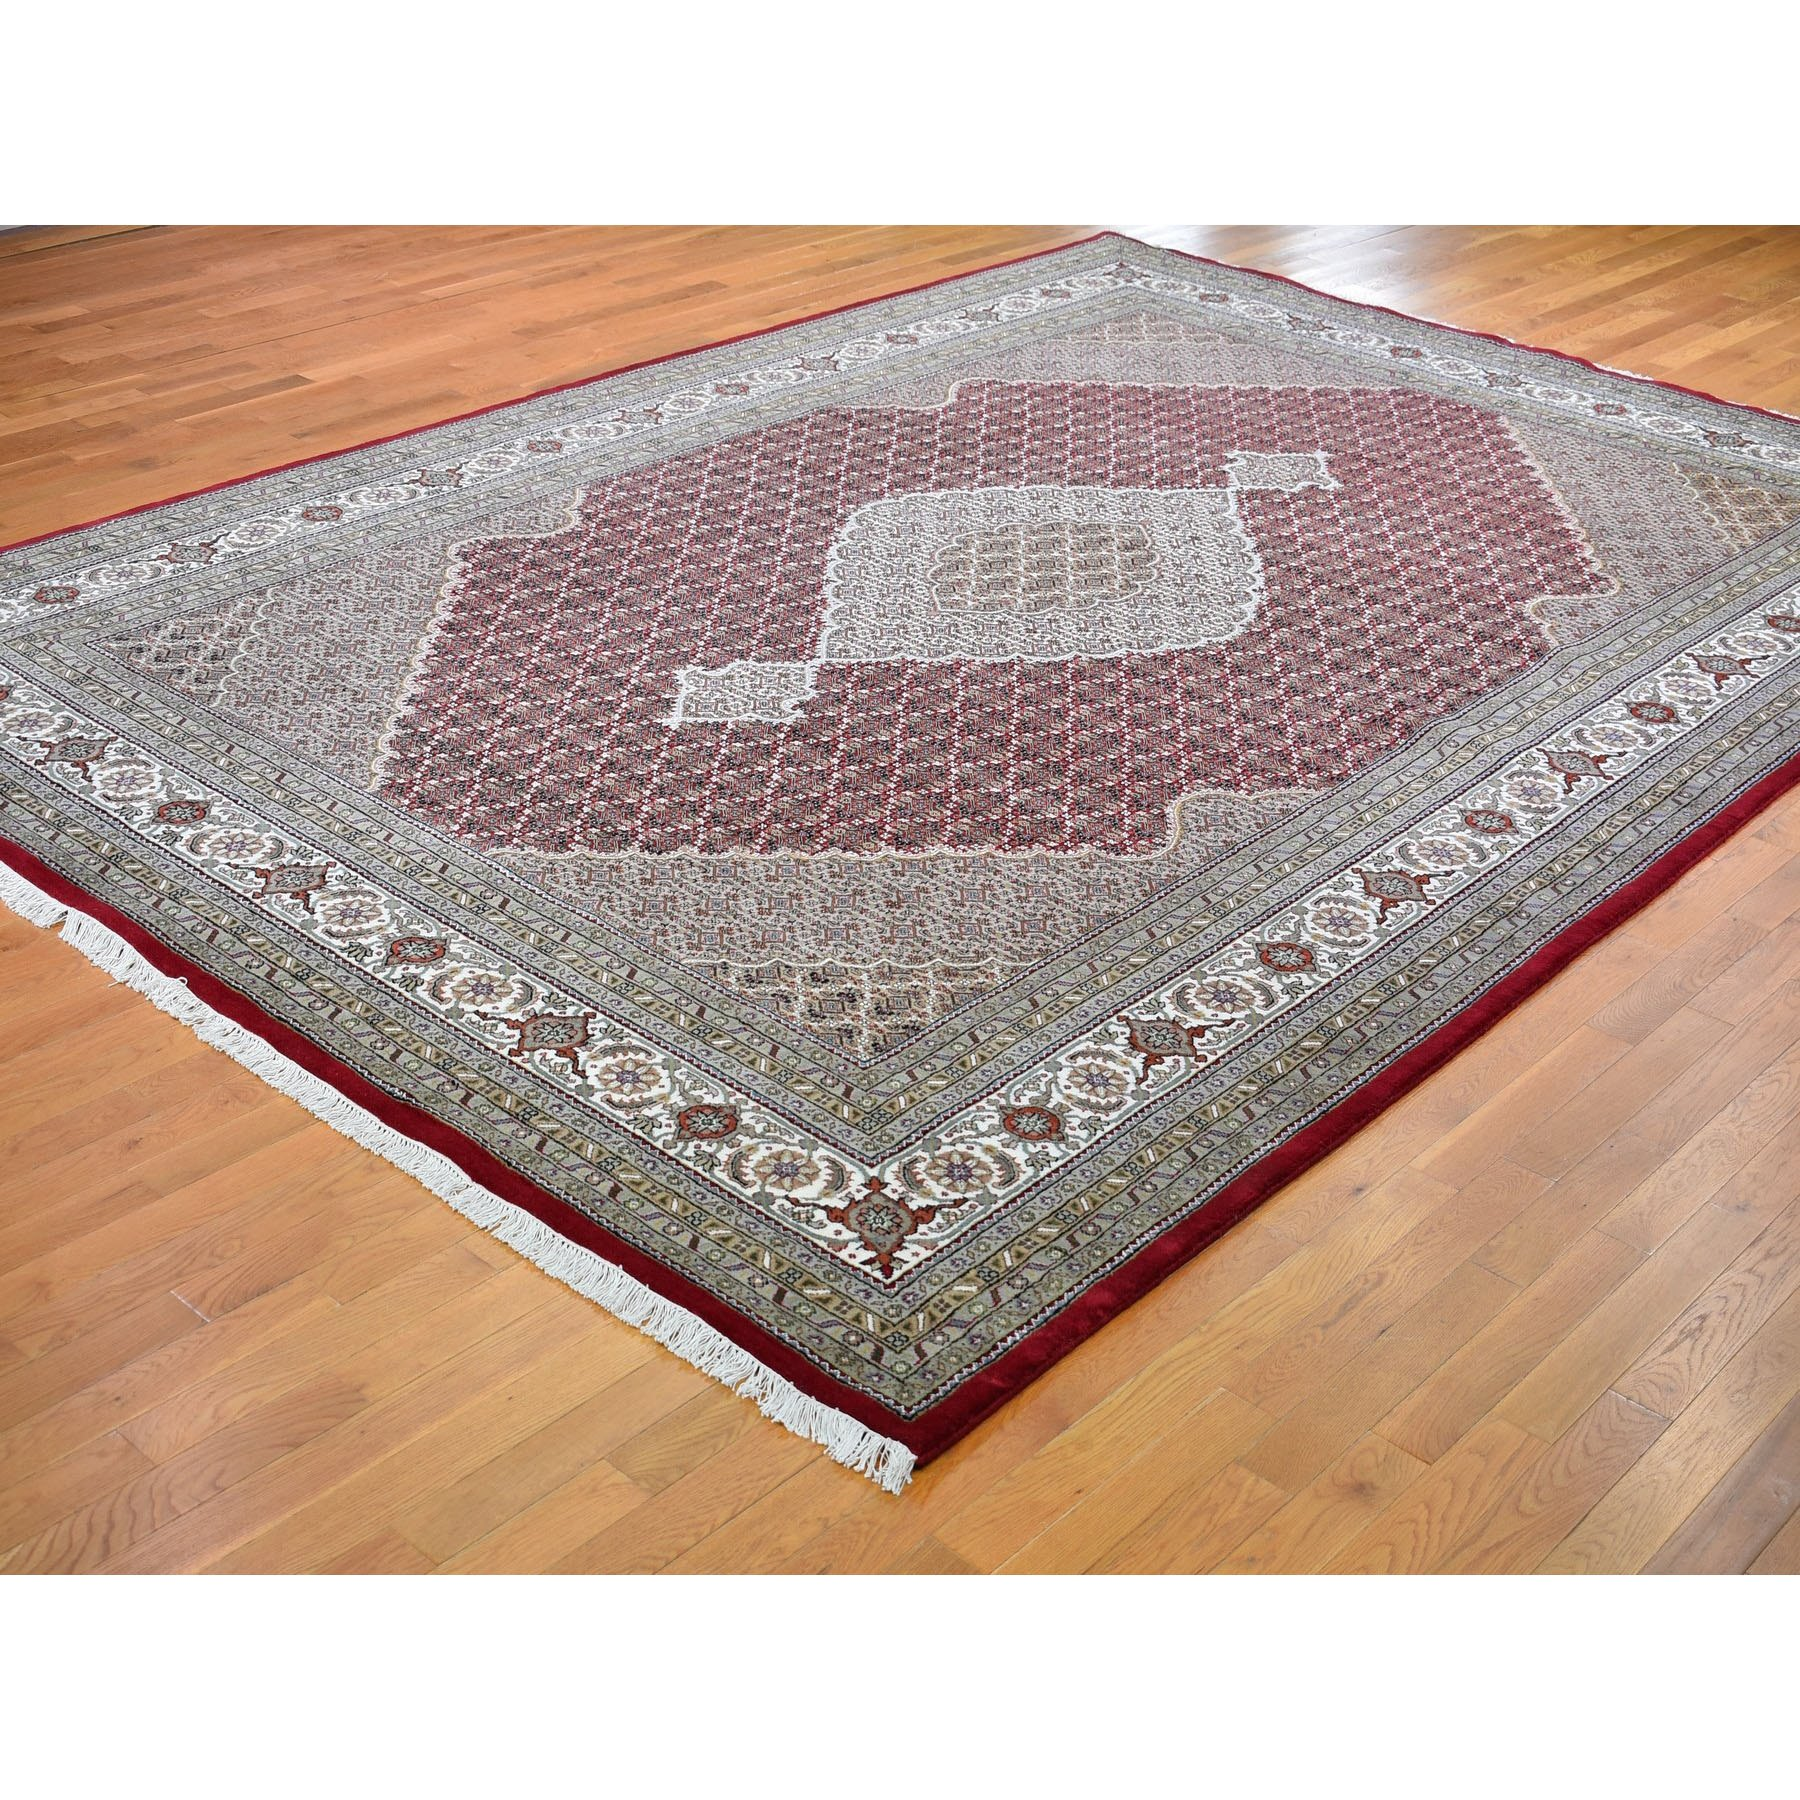 10-x14-2  Red Tabriz Mahi Fish Design Wool and Silk Hand Knotted Oriental Rug